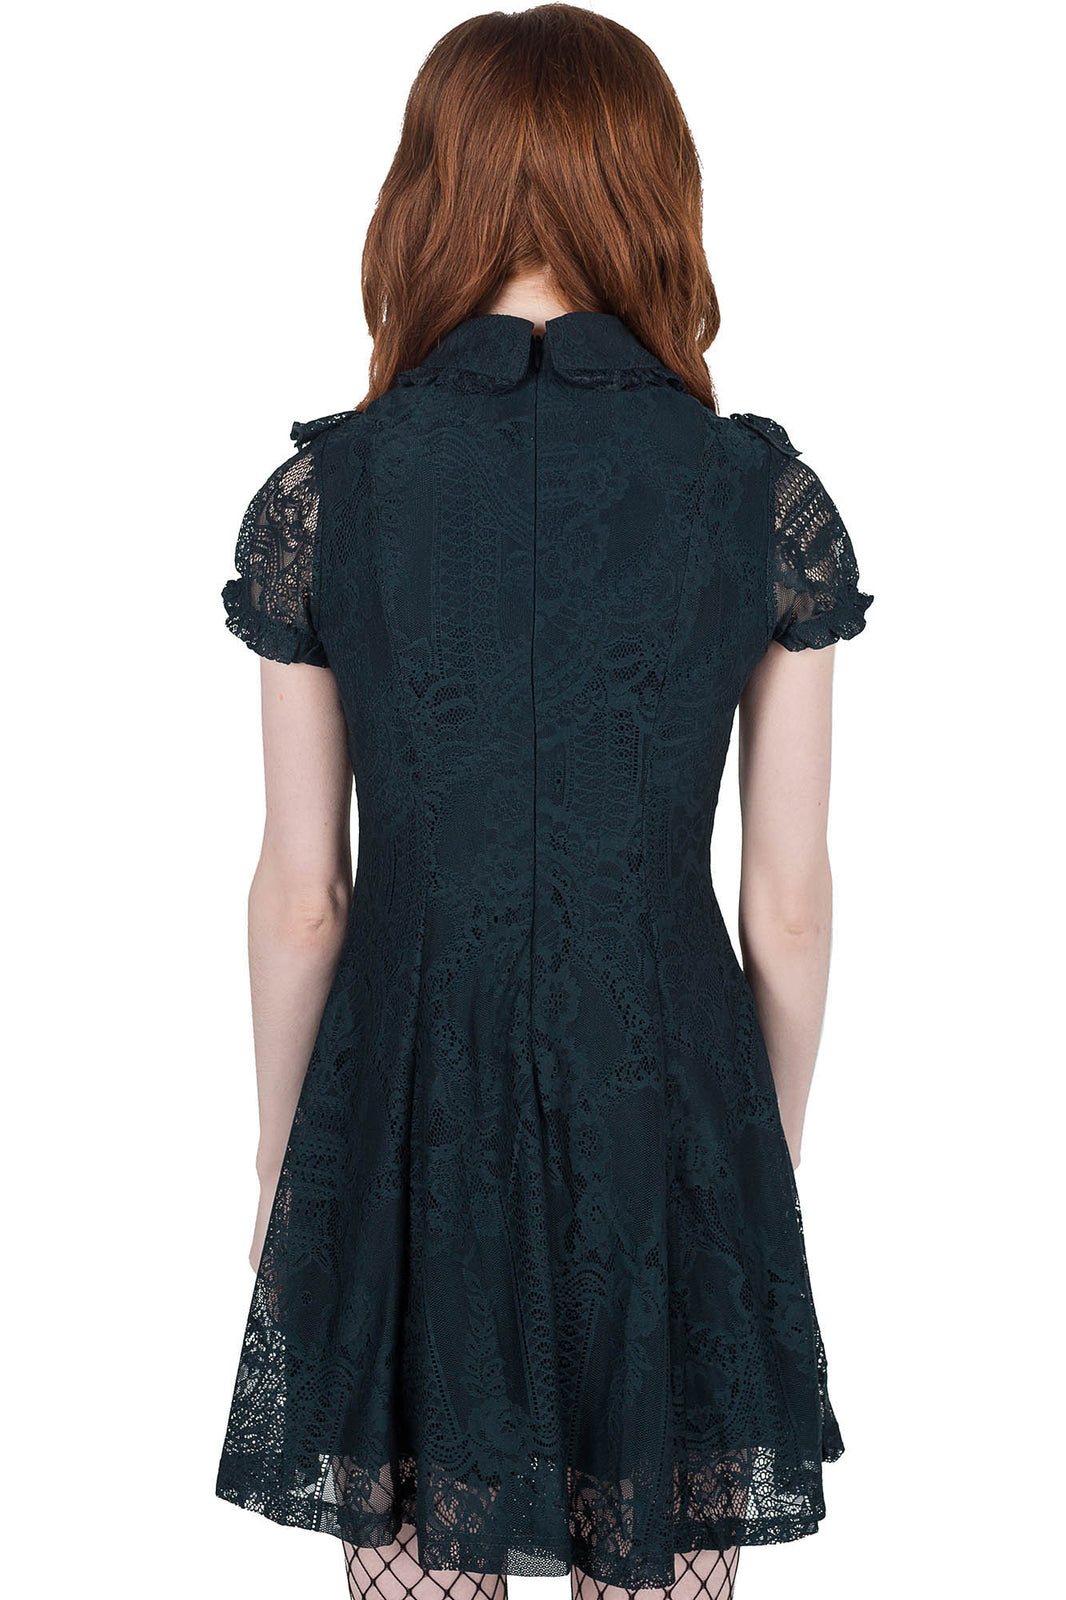 She's Laced Lace Dress [EMERALD]